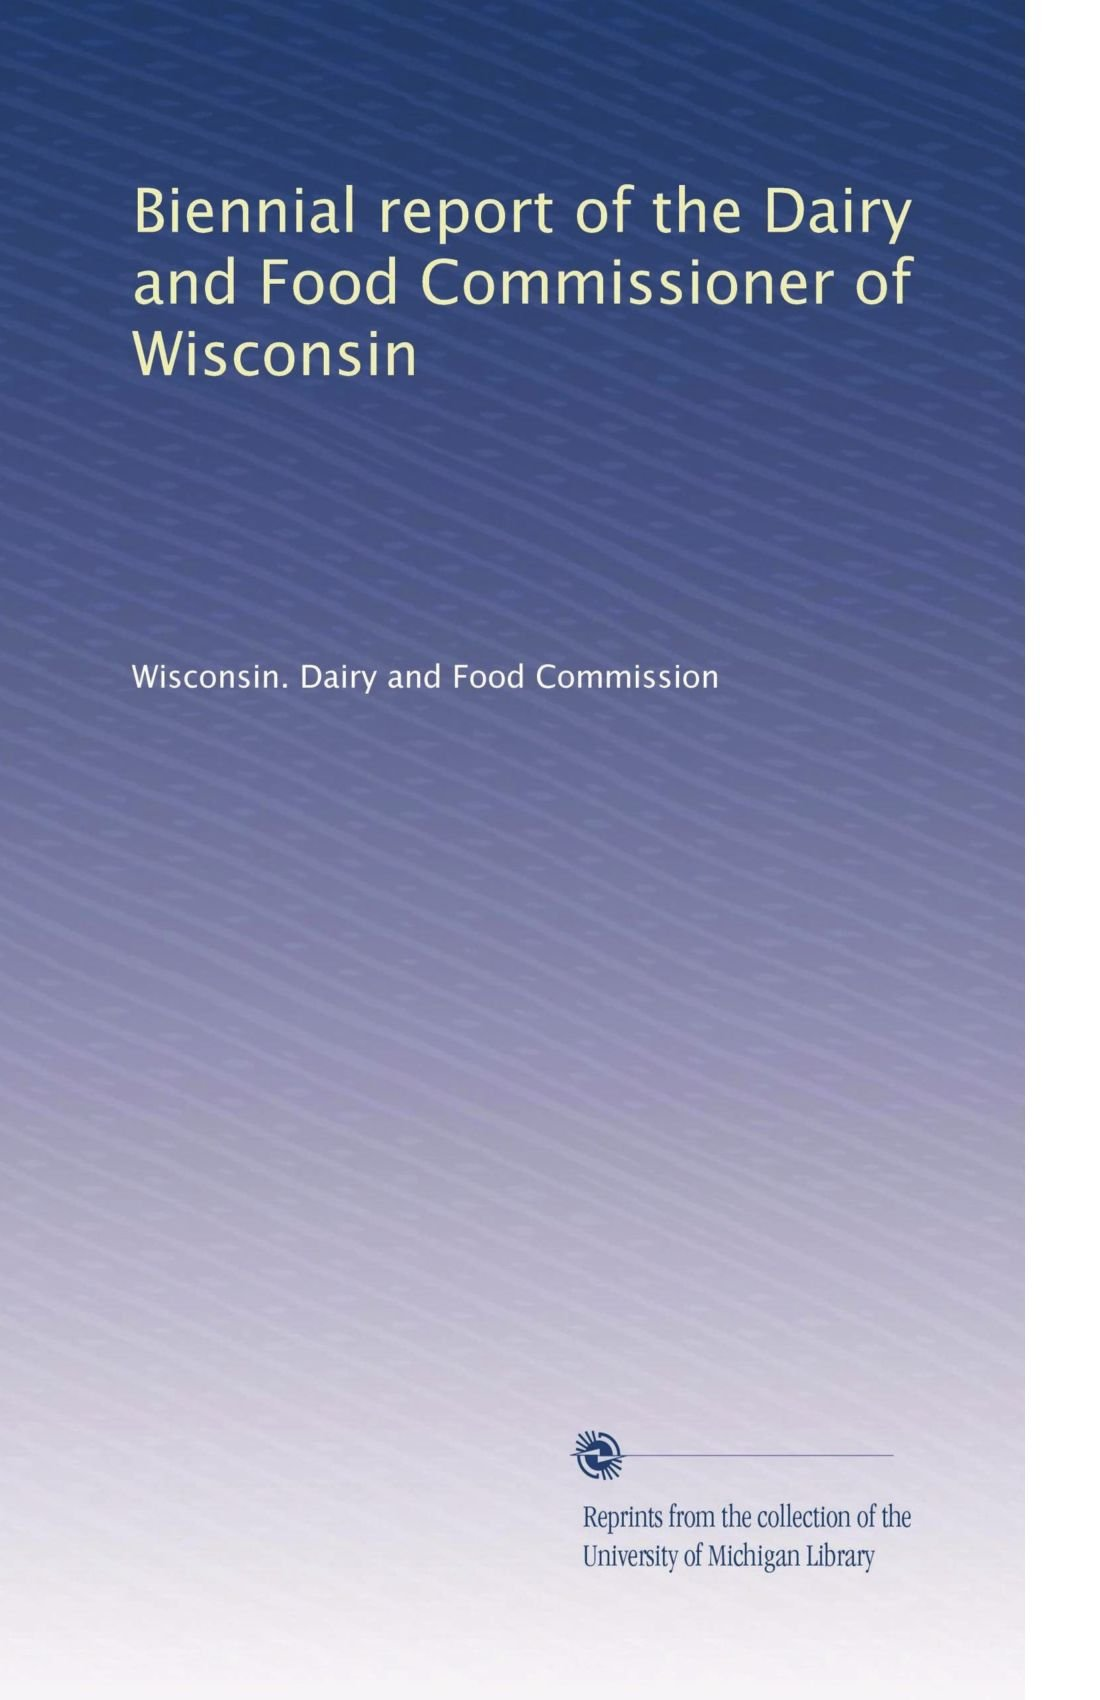 Biennial report of the Dairy and Food Commissioner of Wisconsin (Volume 6) PDF